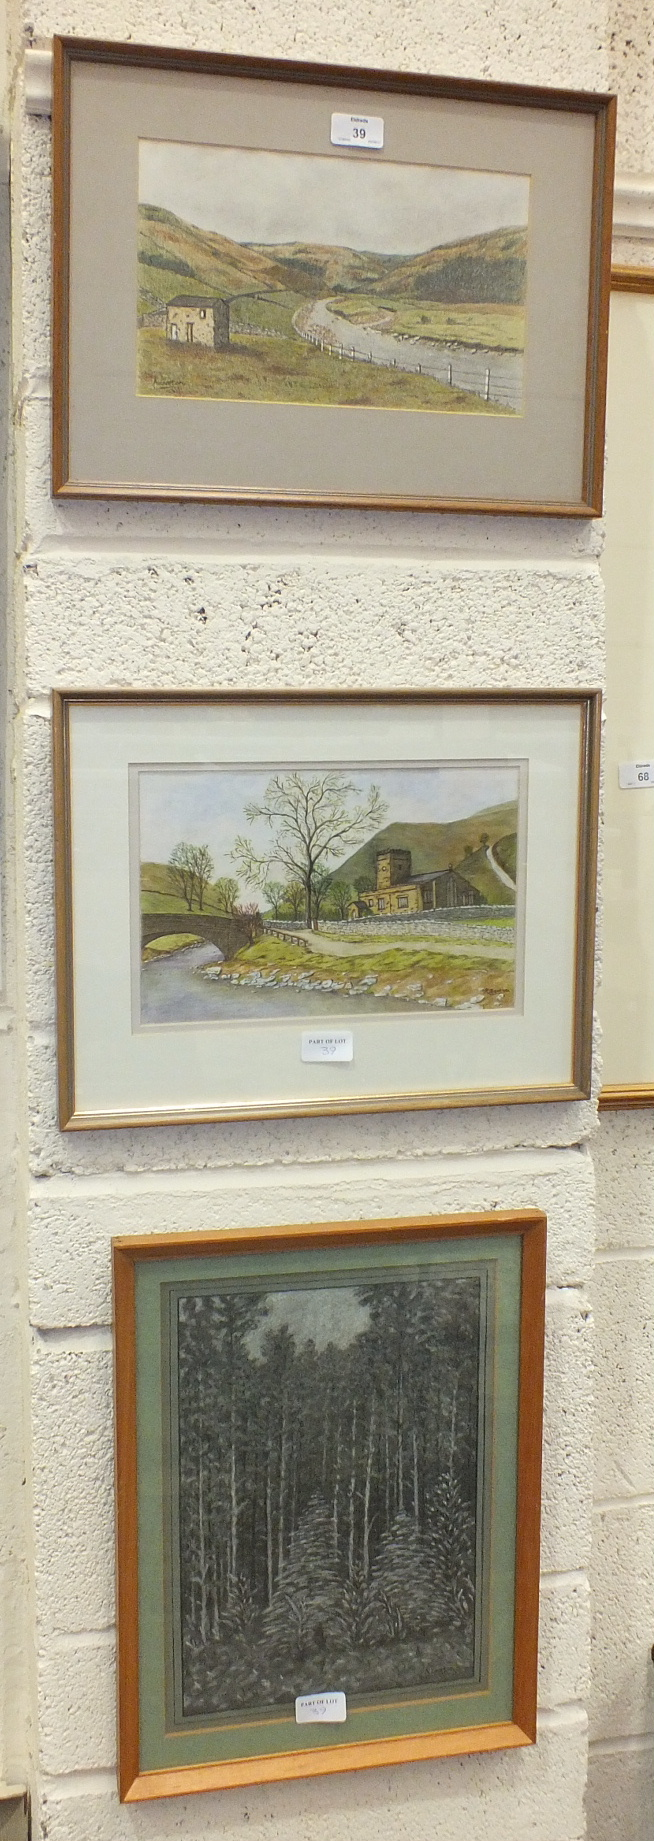 A collection of amateur watercolours and drawings by K Garton, mainly Dartmoor scenes. - Image 4 of 4